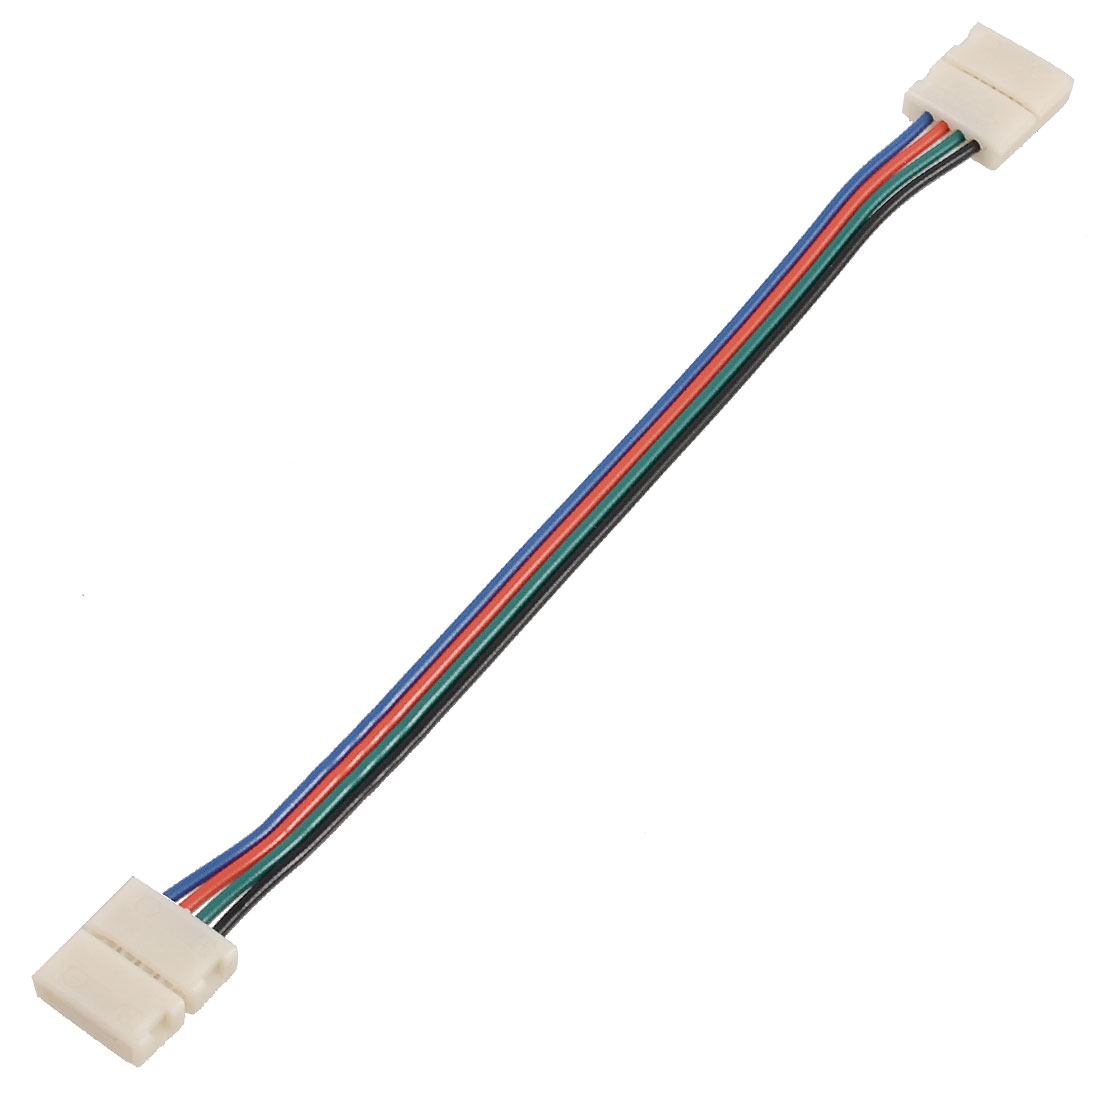 LED Light Strips B4P-10 to B4P-10 Connect Connector Cable